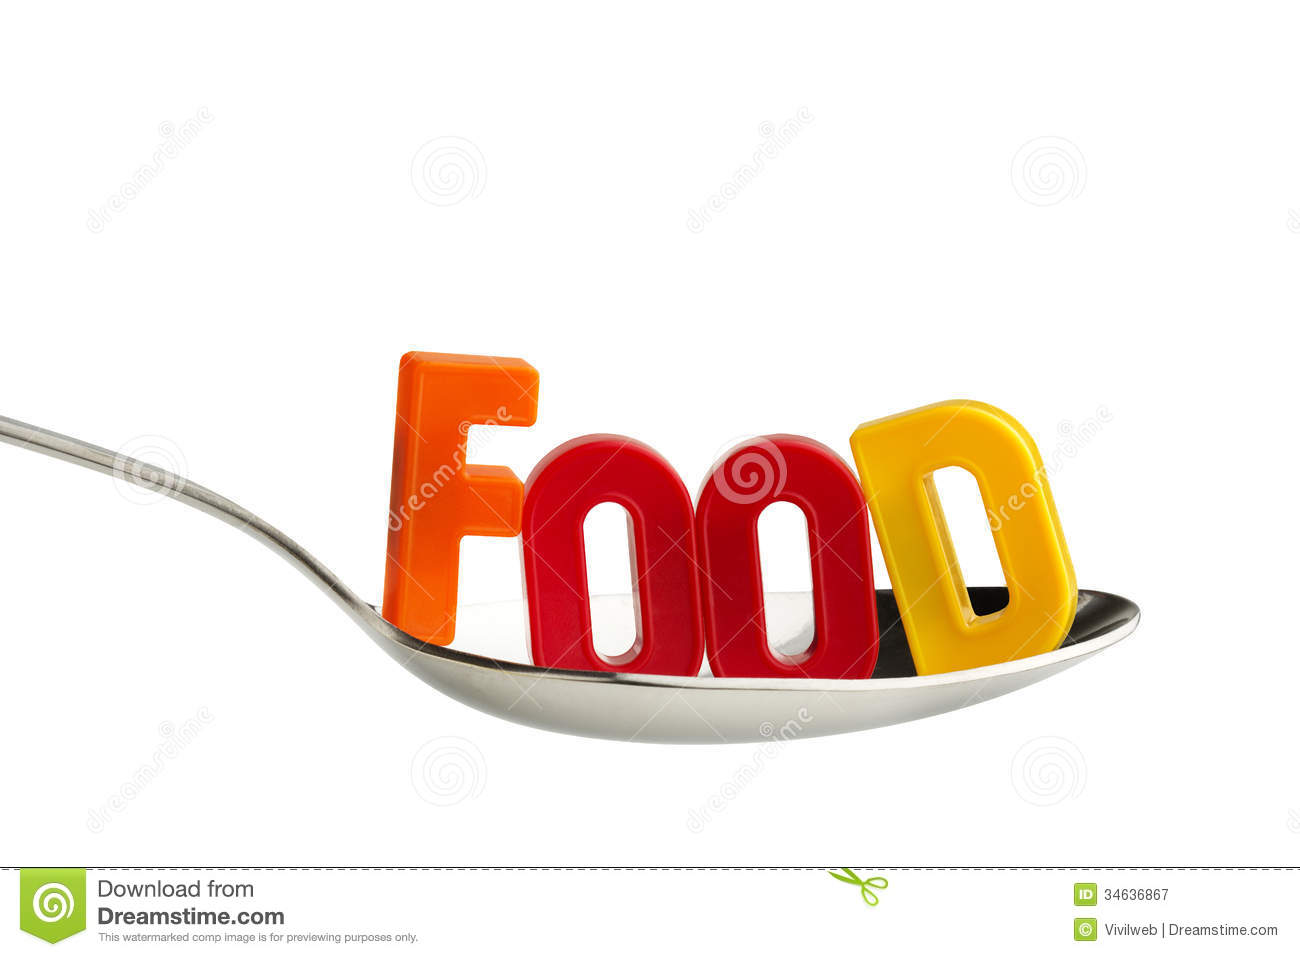 Food Service Royalty Free Stock Photography - Image: 34636867